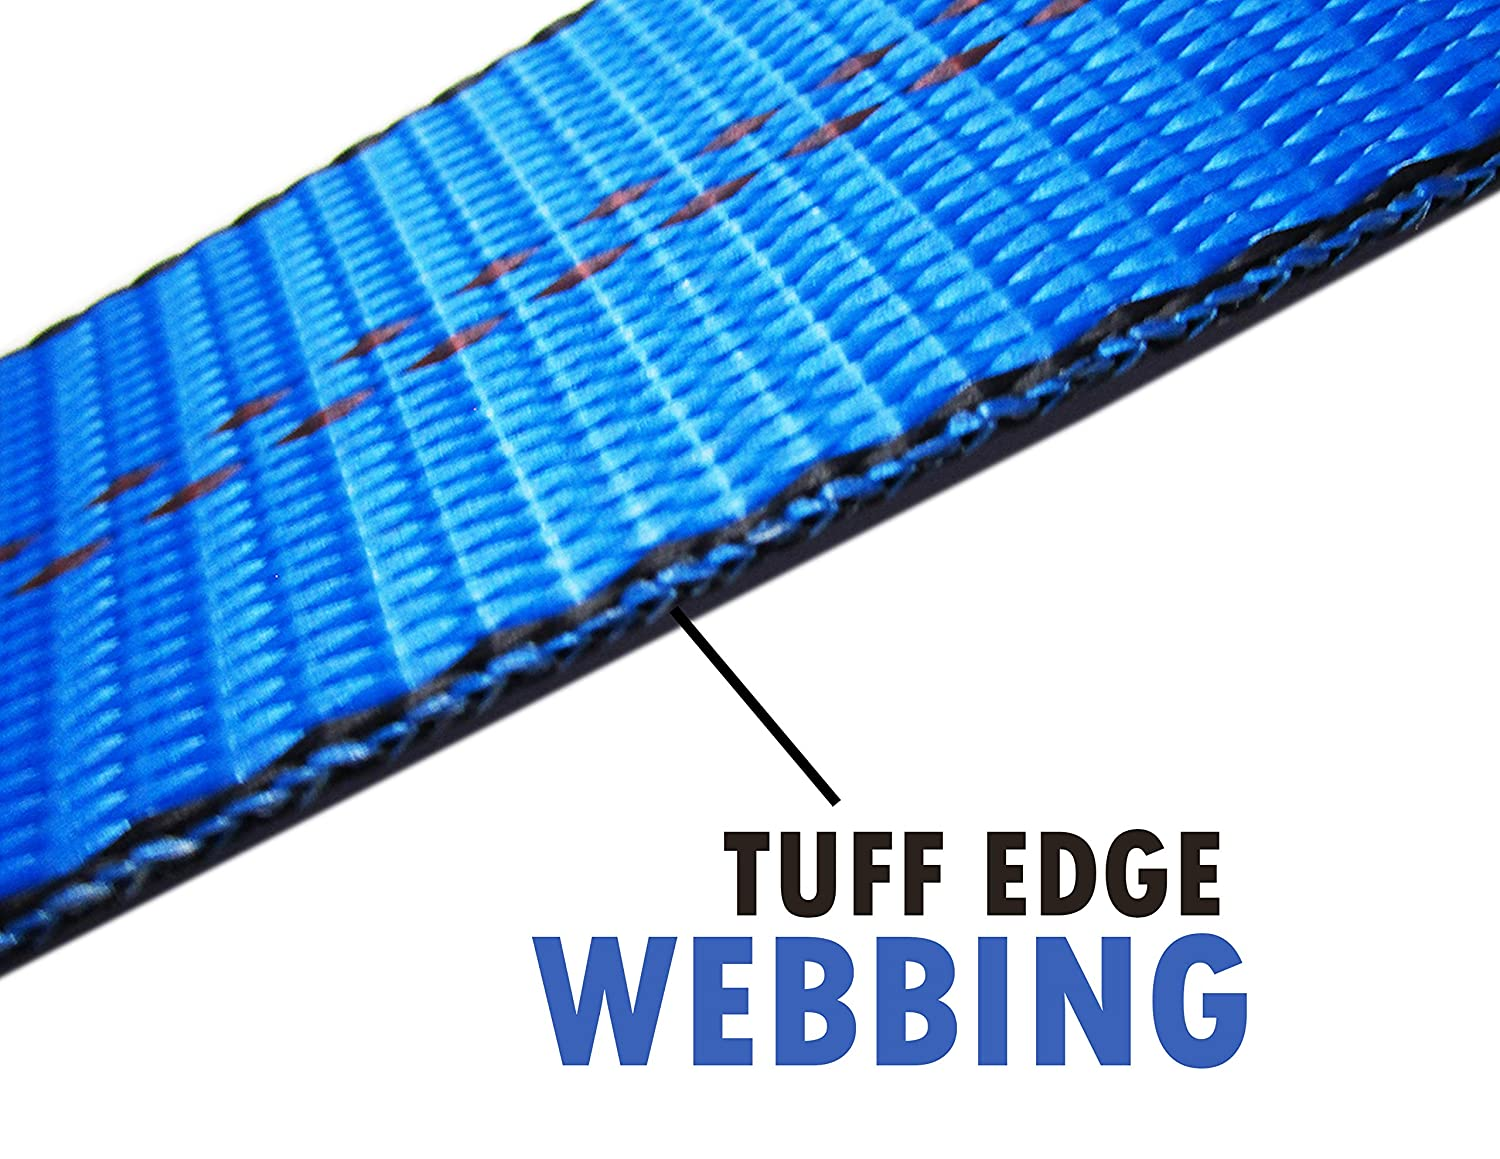 14-20 Inches, Blue Domestic RuggedTow 2X USA Car Basket Straps Adjustable Tow Dolly DEMCO Wheel Net Set Flat Hook Standard Wheels Fits